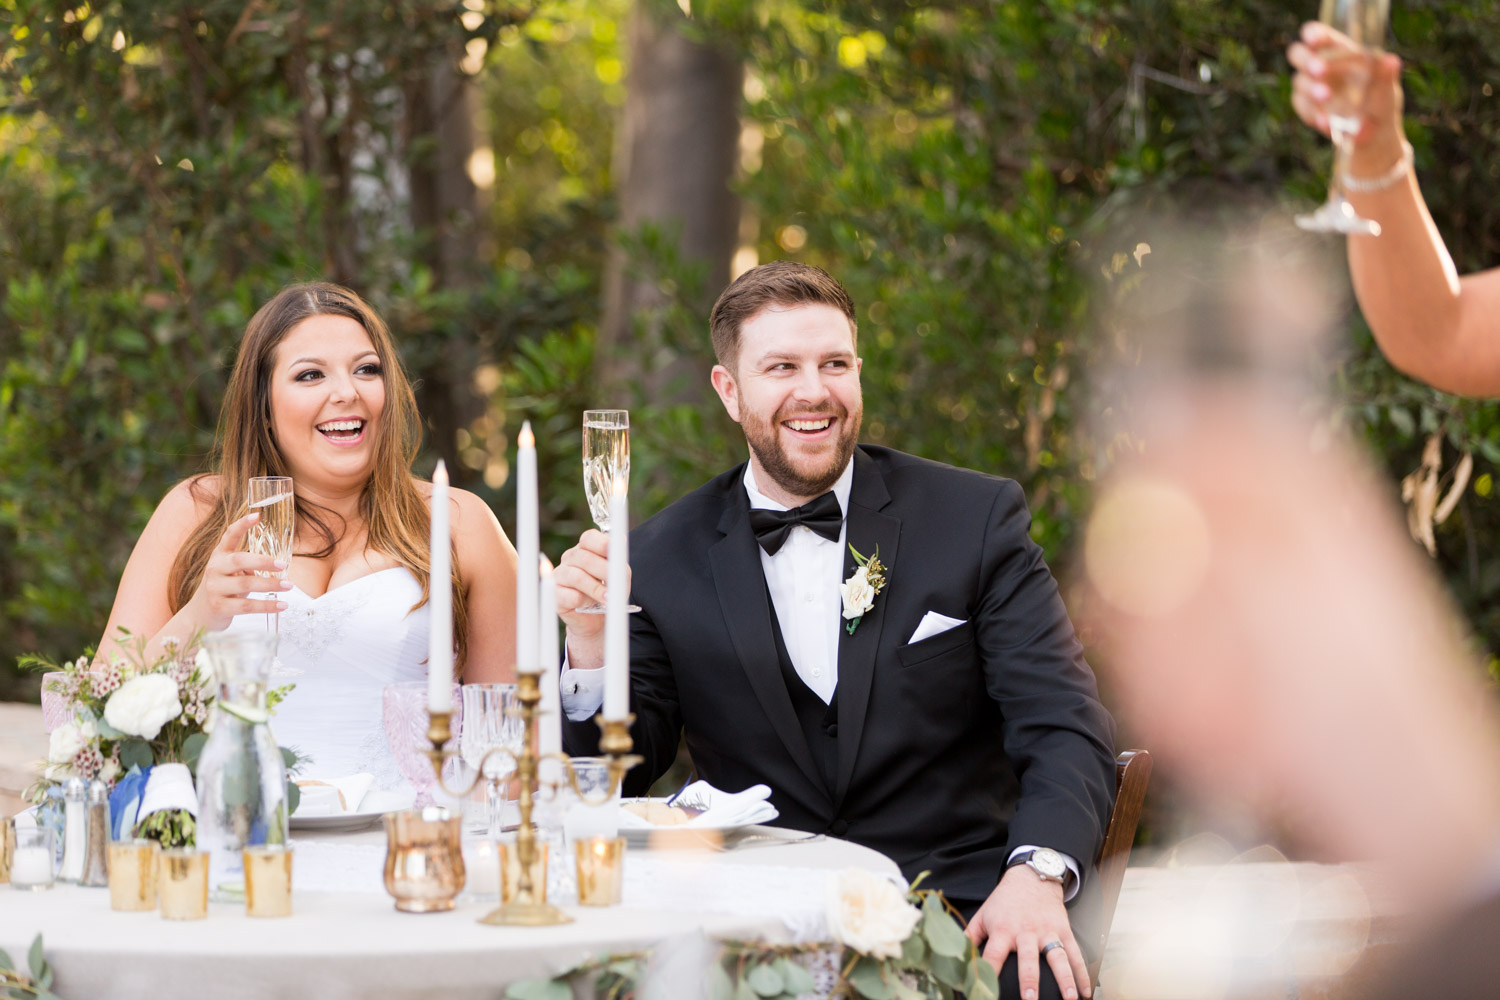 Beautiful candid wedding photography in San Diego during a toast, bride and groom laughing during toasts